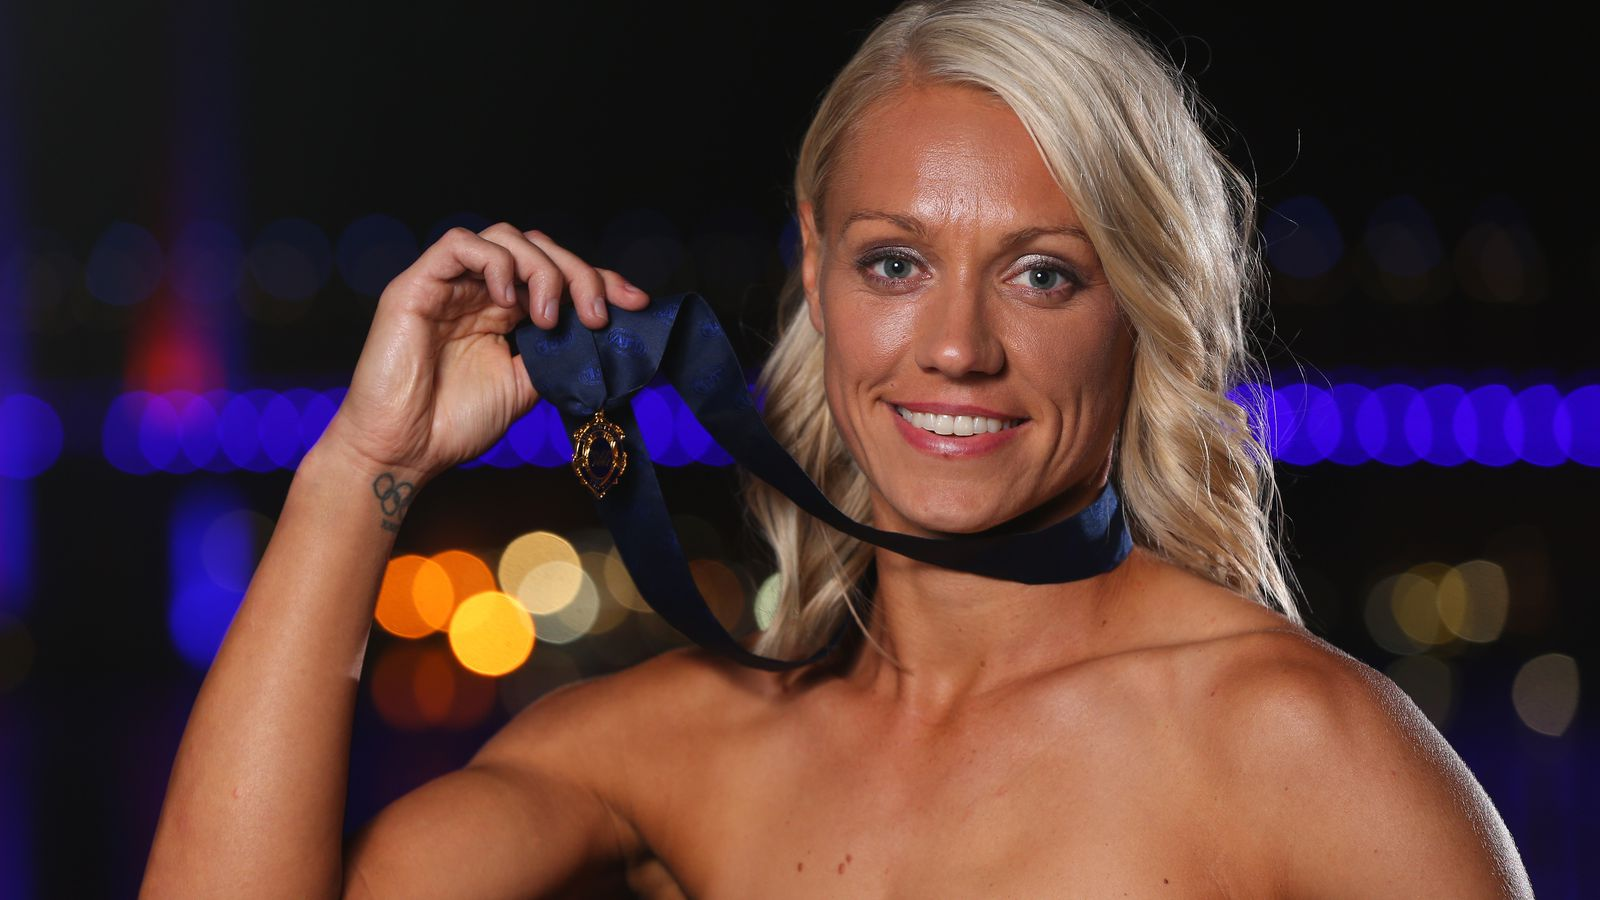 Out WNBA Player Erin Phillips Wins Aussie Rules Football